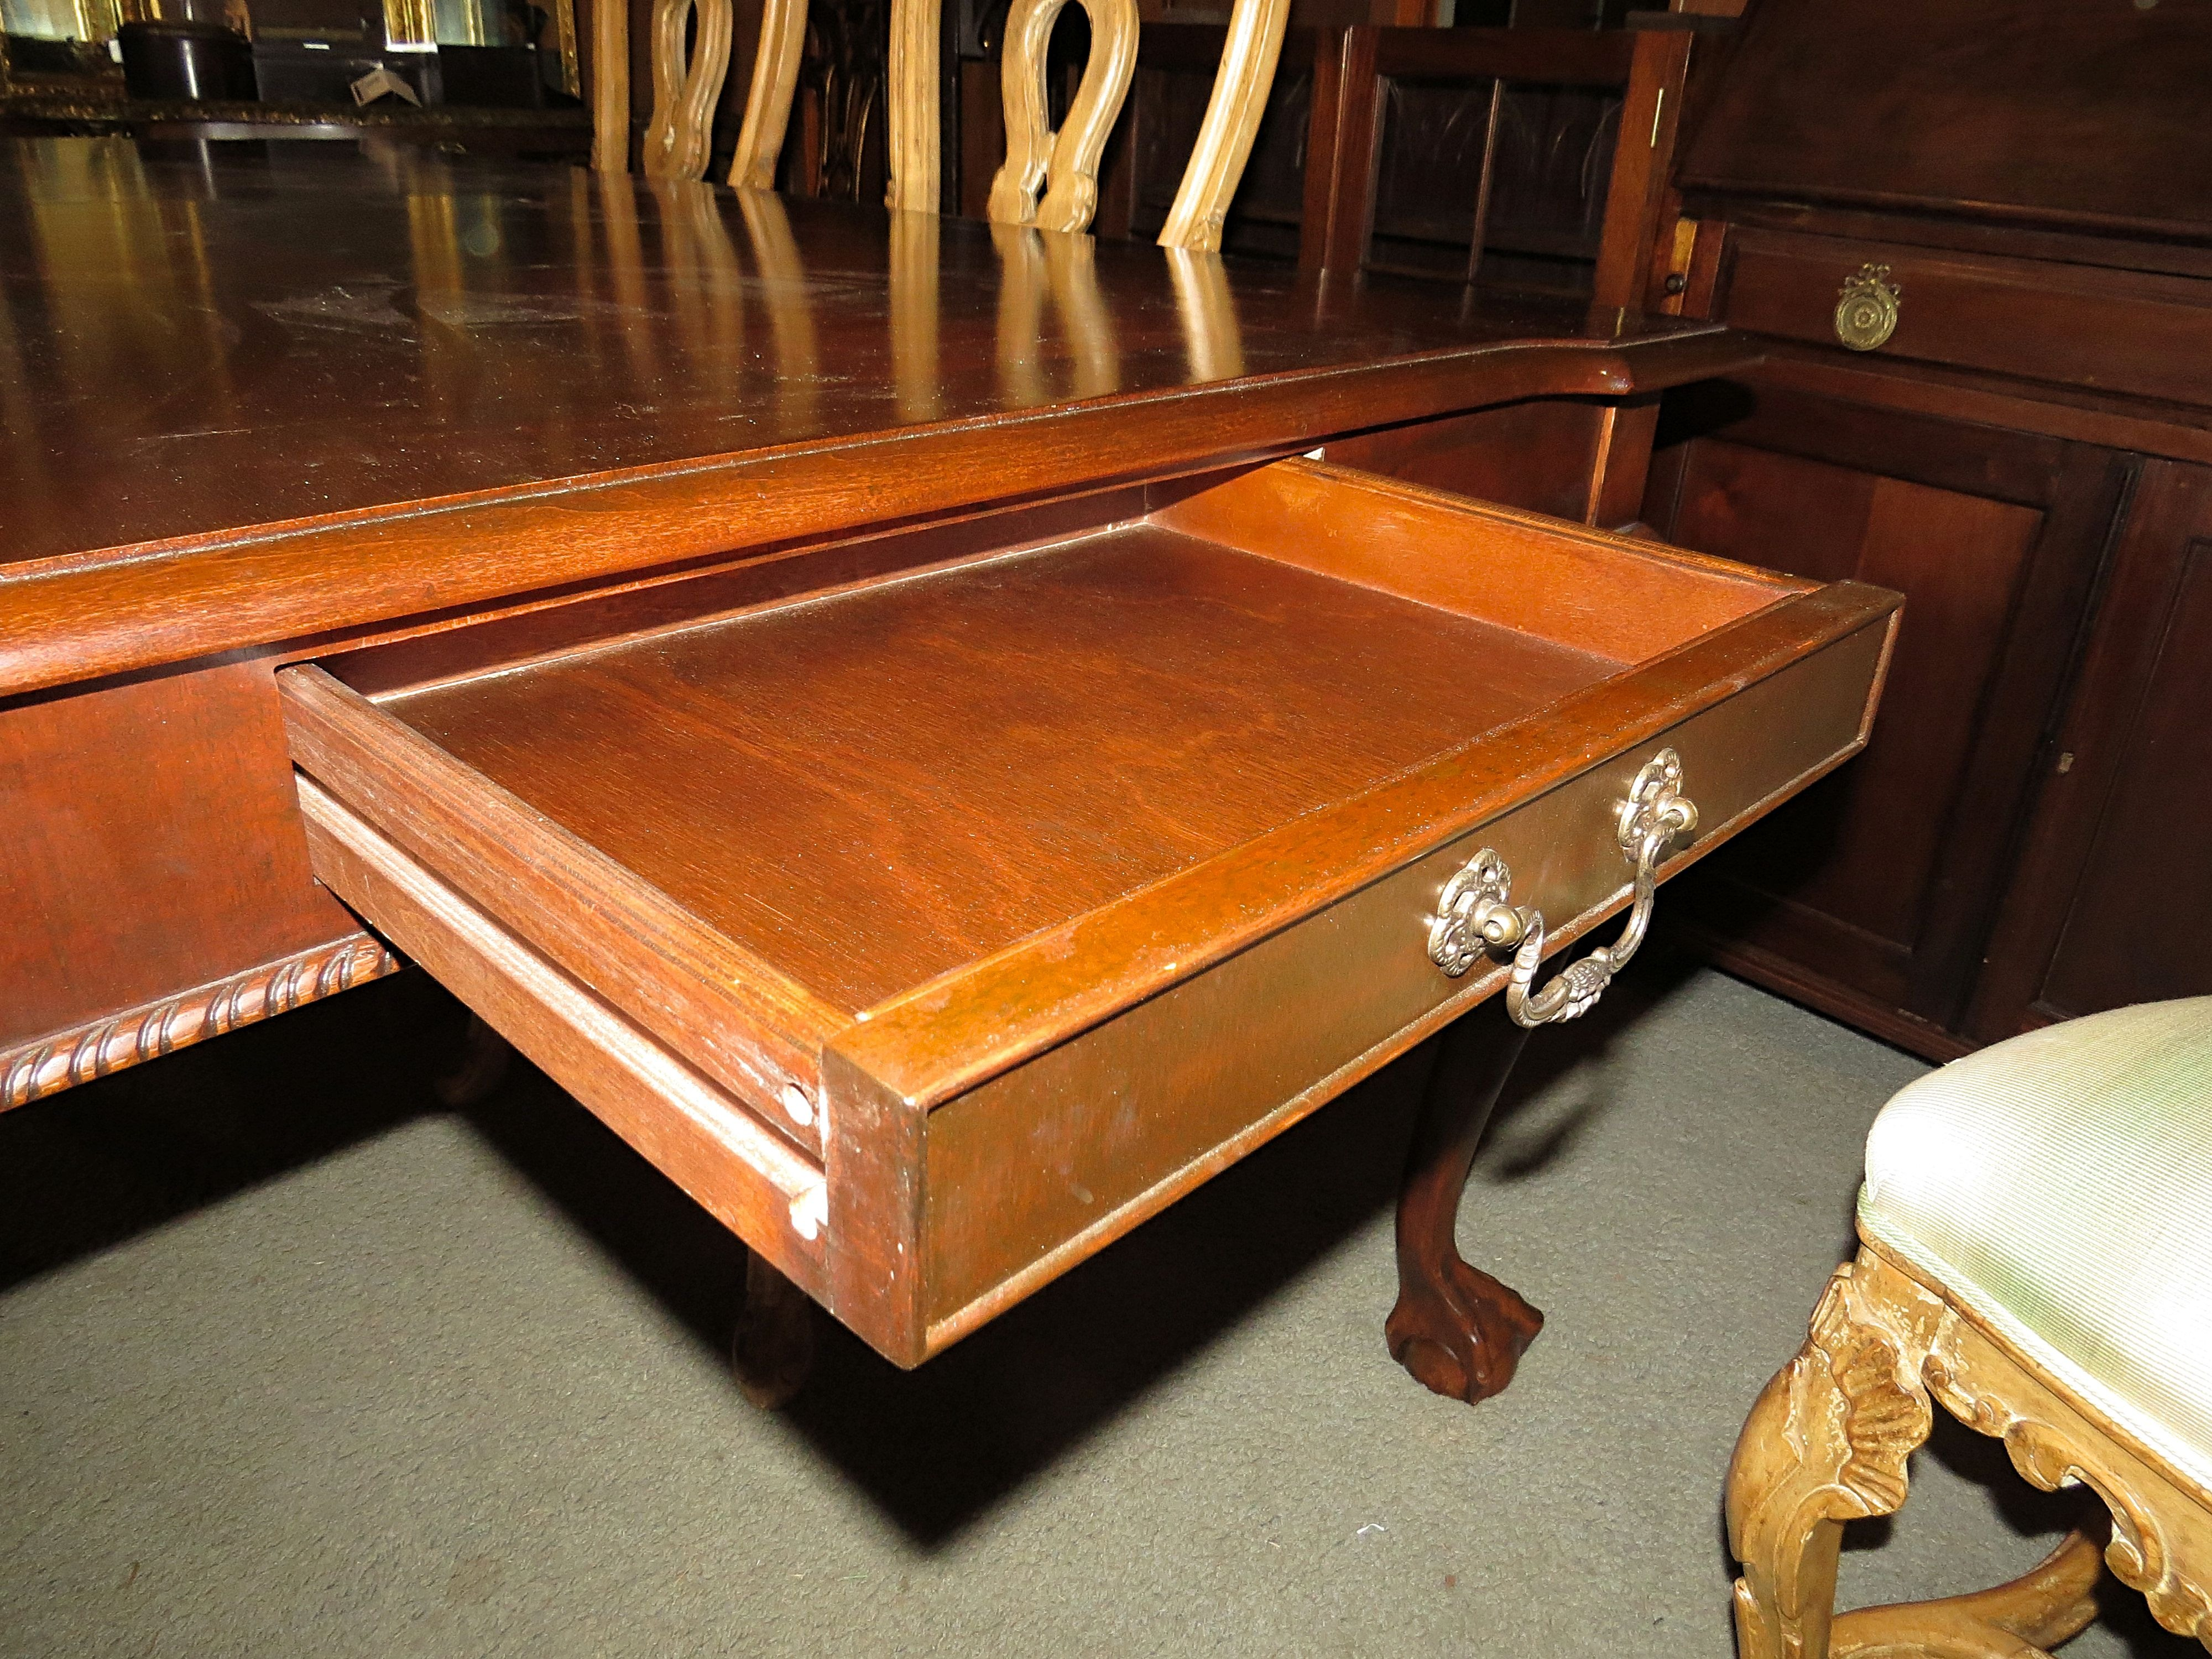 Mahogany Dining Table with Silverware Drawers